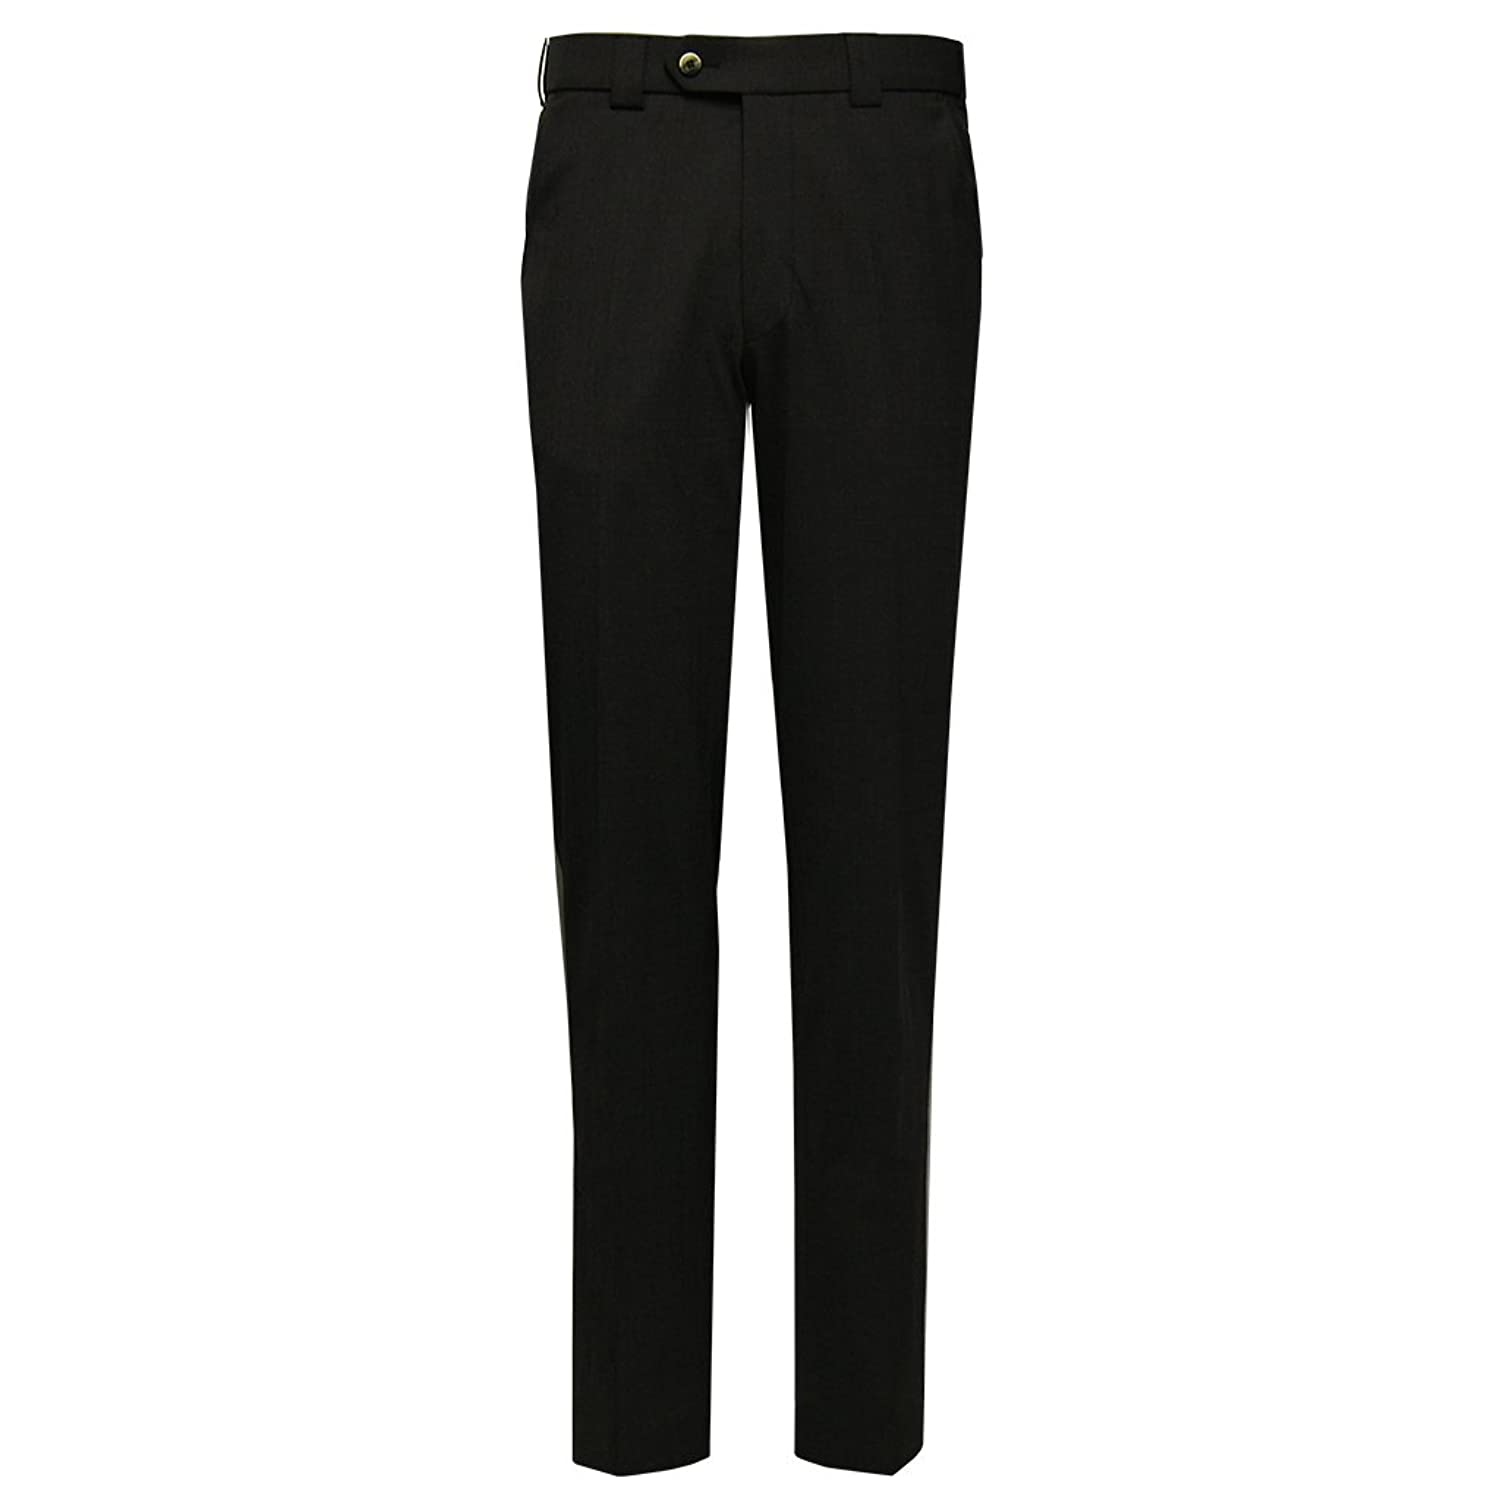 Meyer Trousers - Tropical Wool Mix Trouser - Black